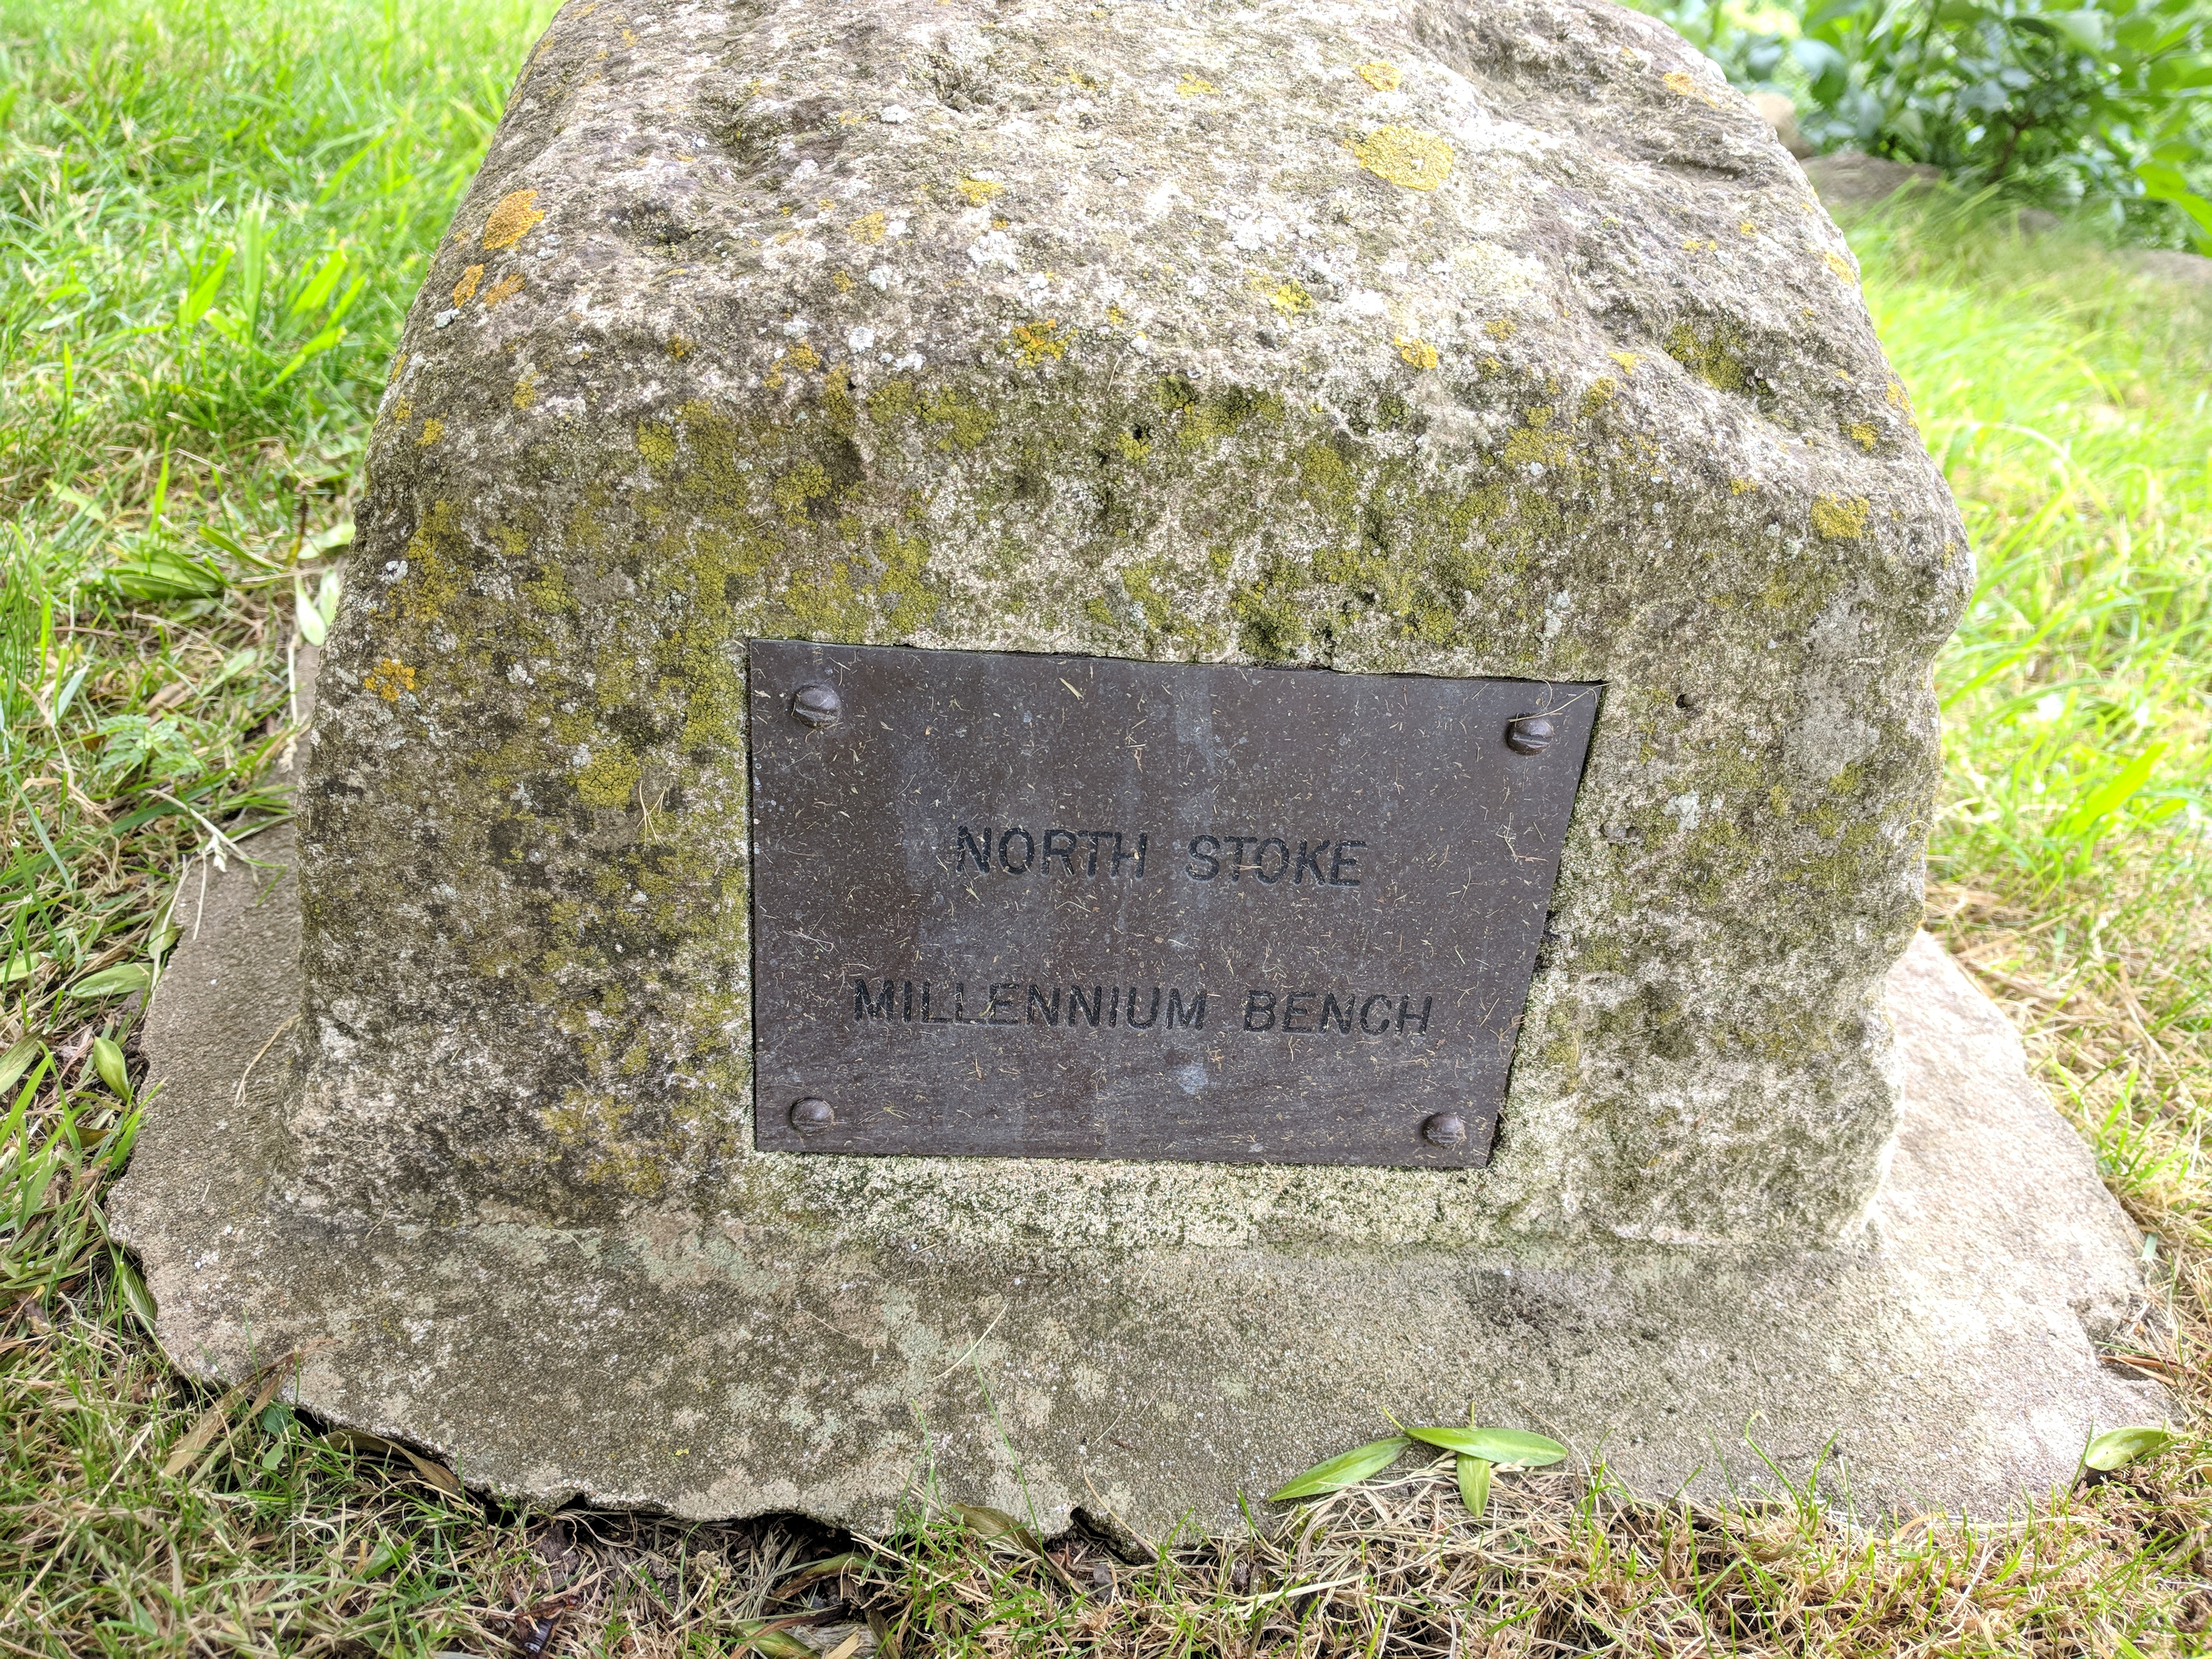 Close-up of the inscription